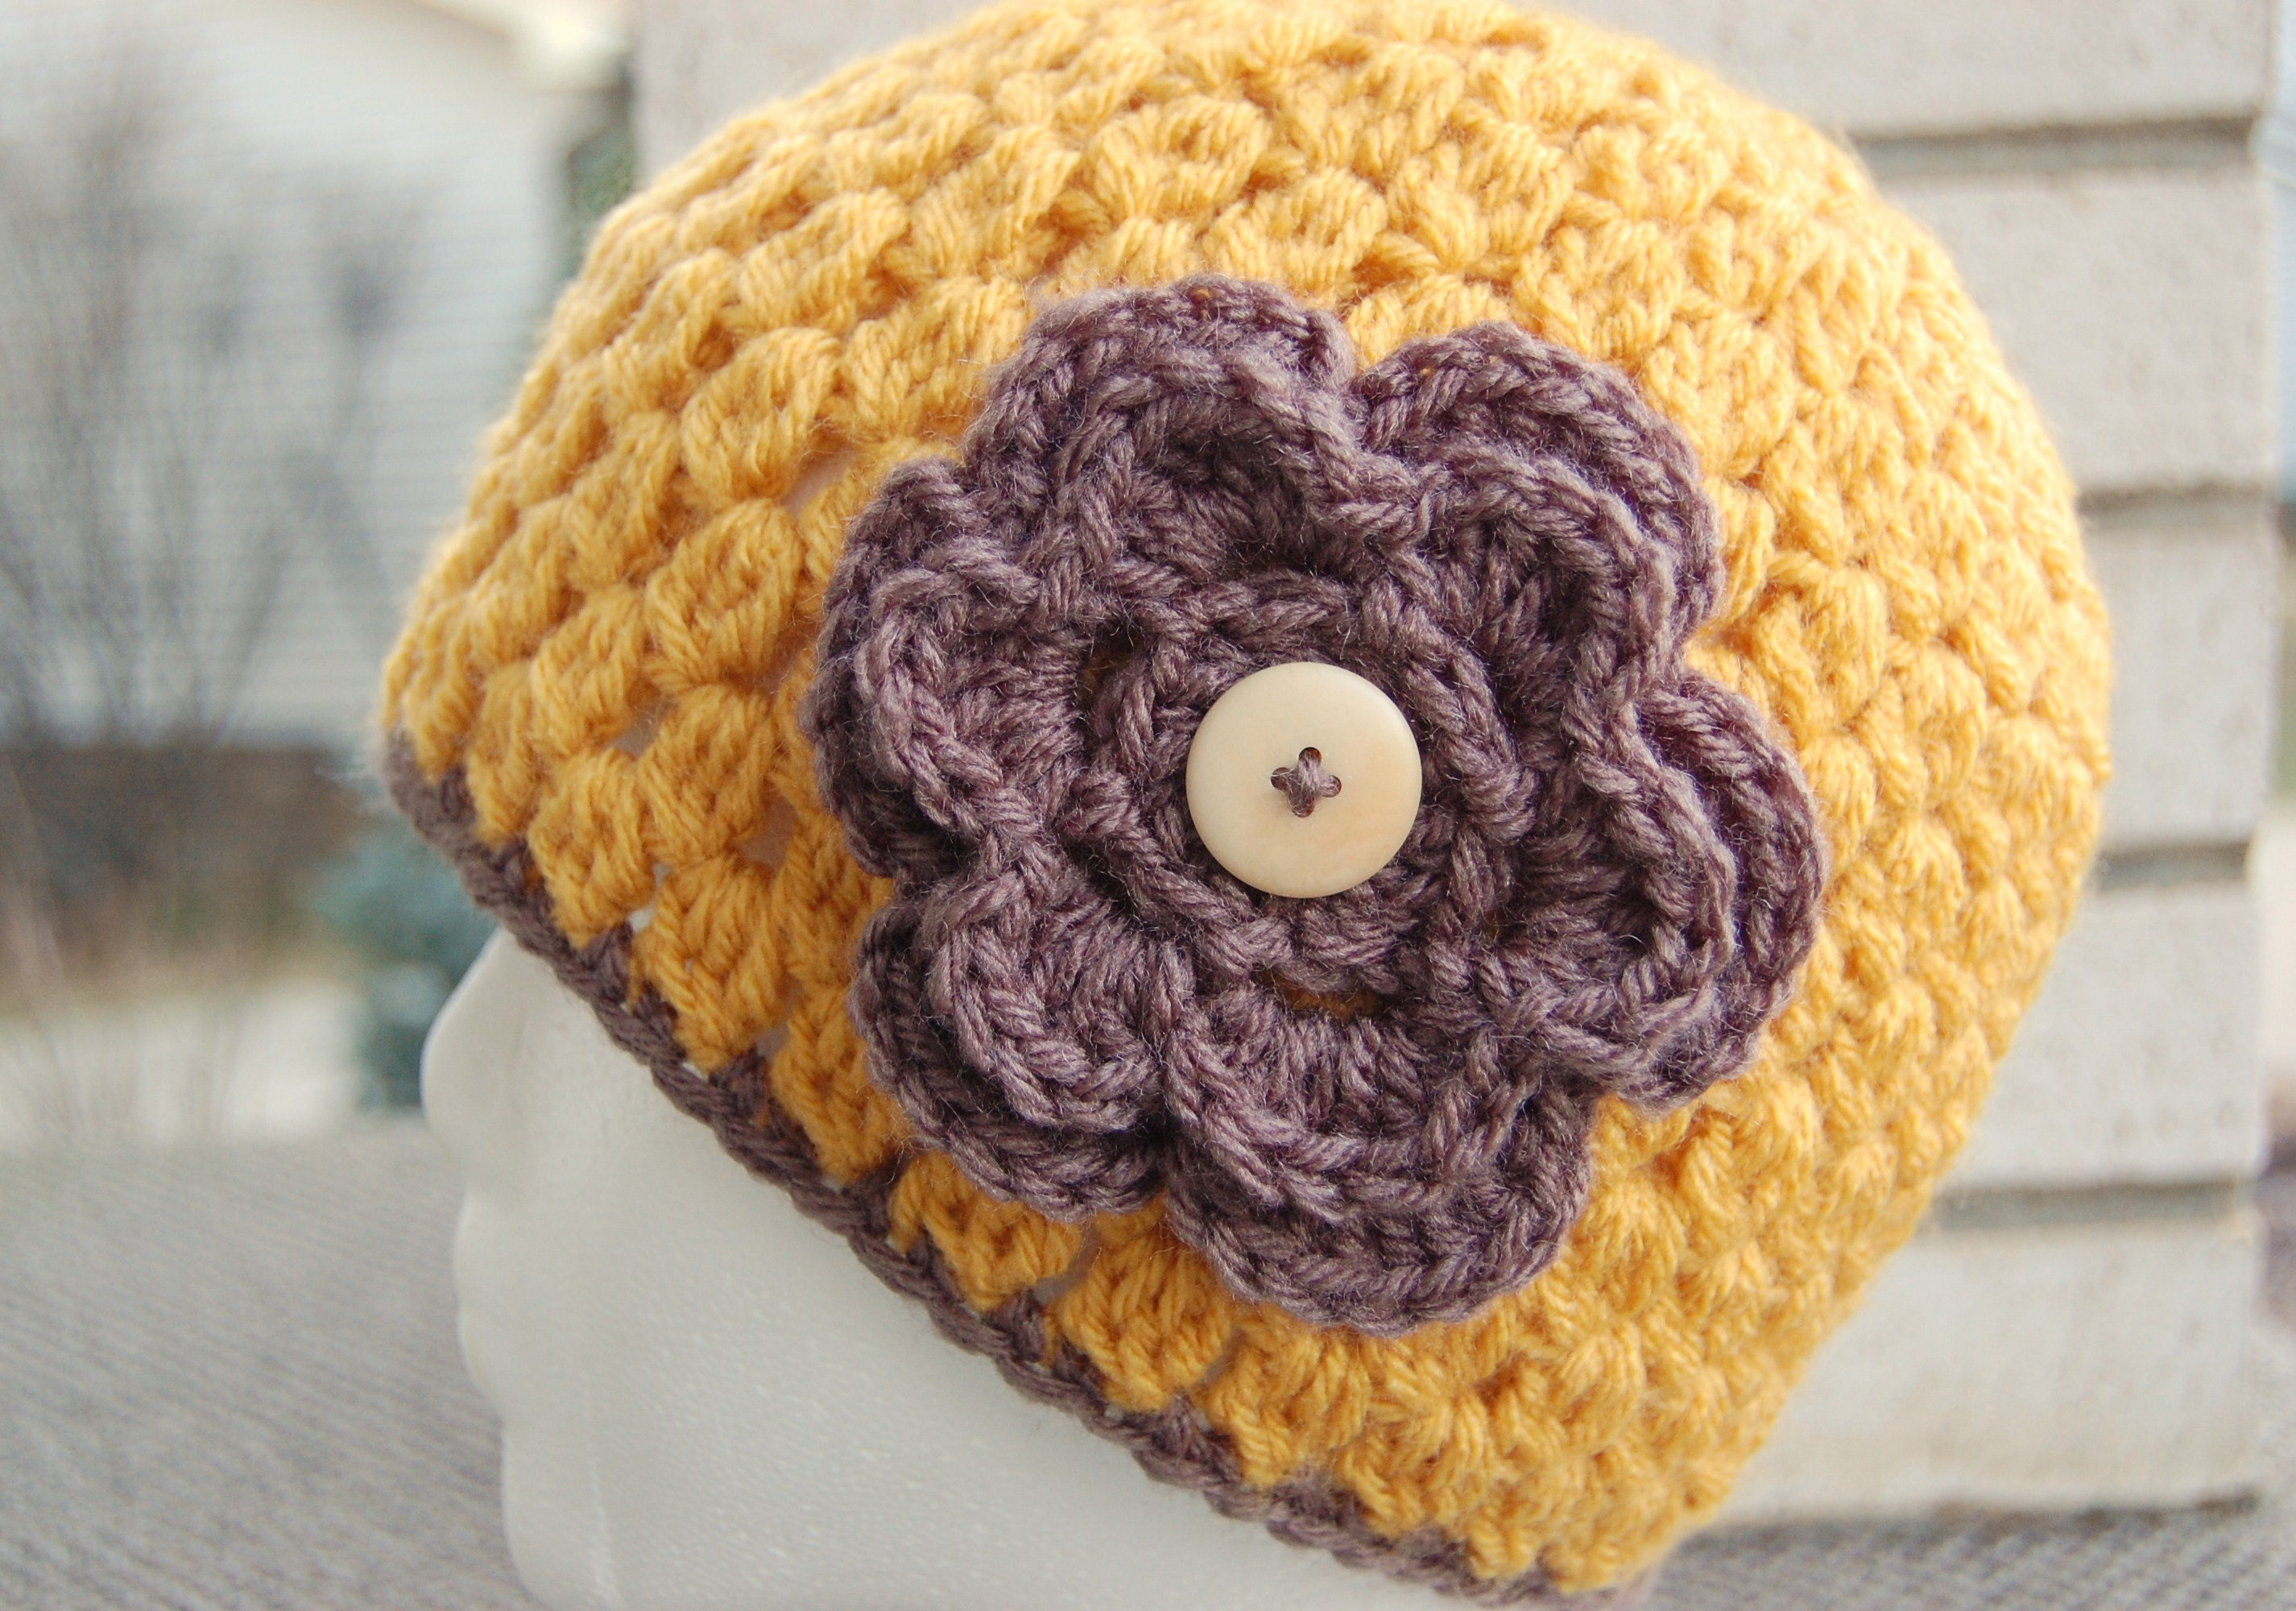 Crocheting Hats Patterns : The Jenny Lee - New Crochet Hat Pattern